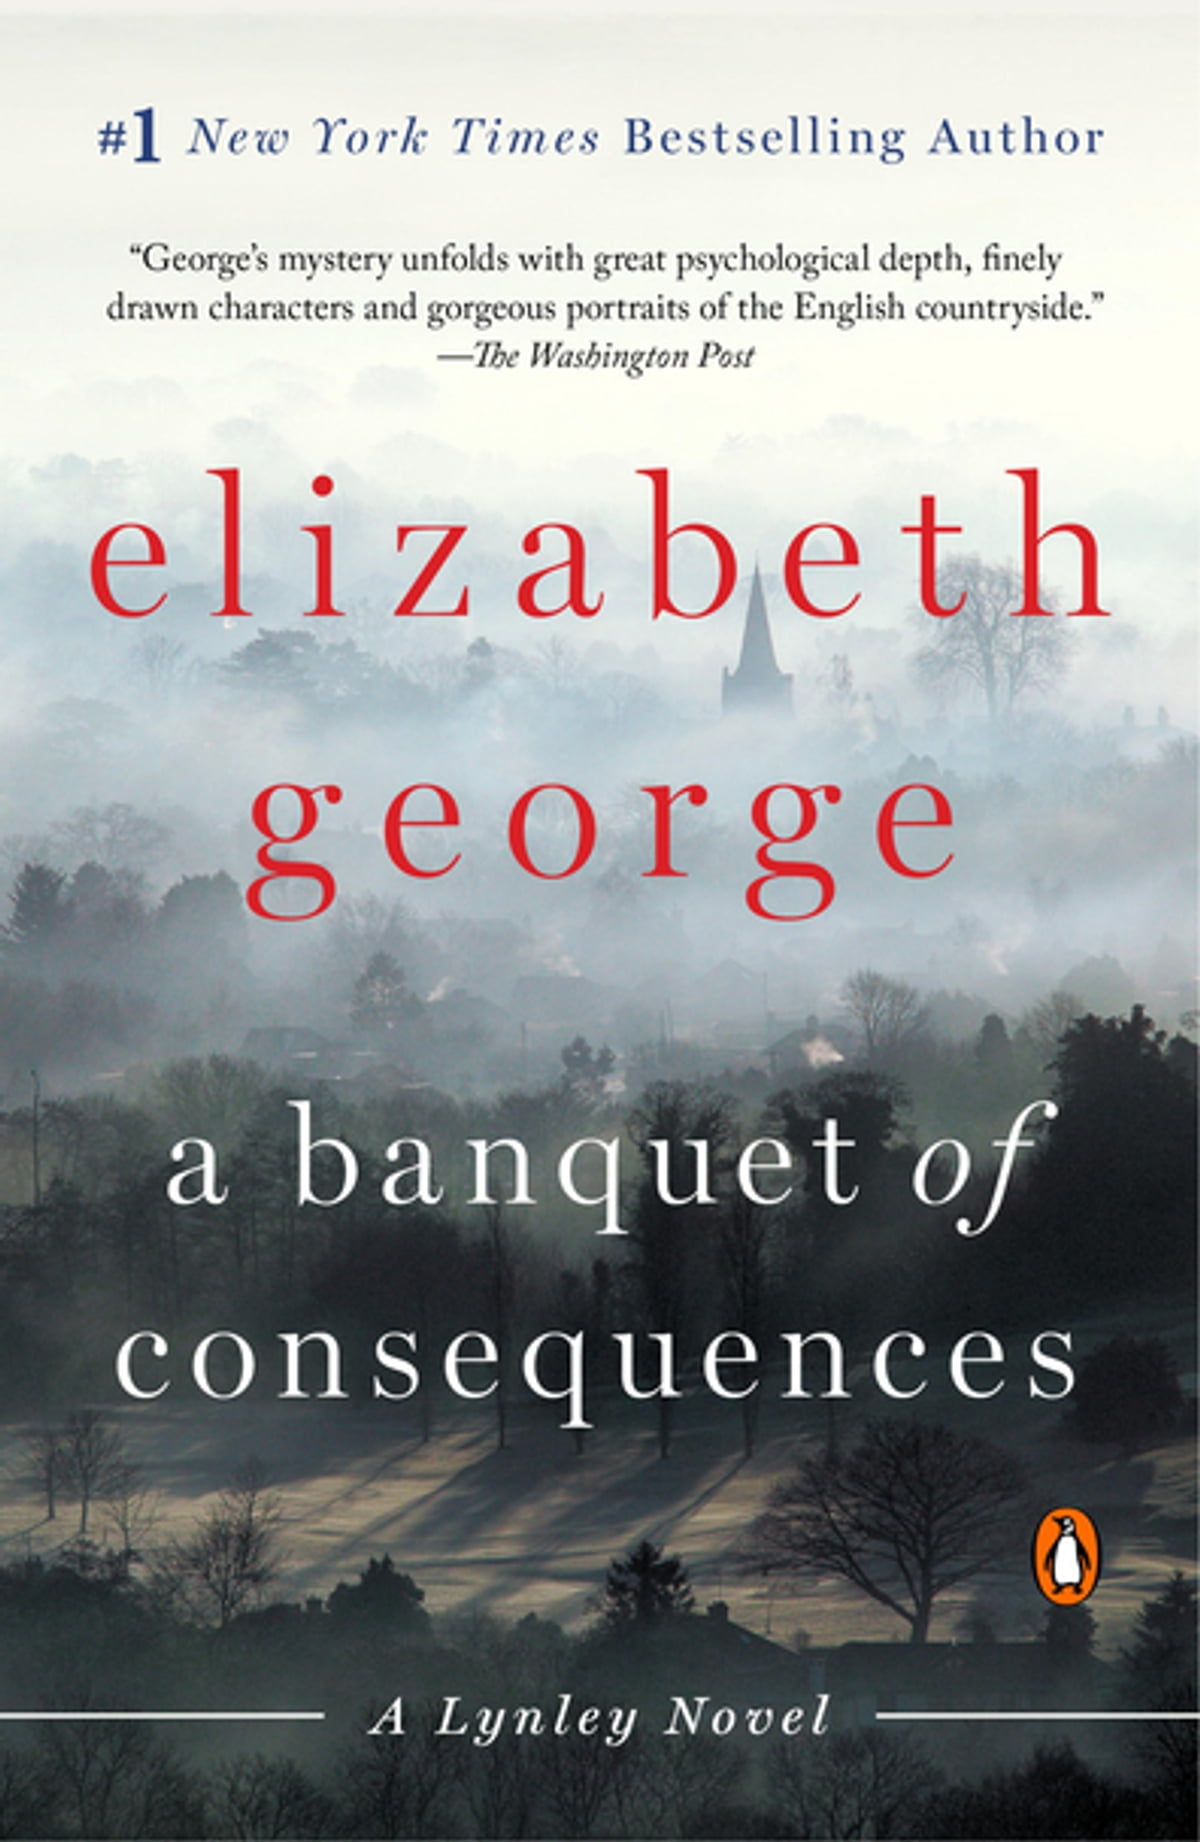 A Banquet Of Consequences  A Lynley Novel Ebook By Elizabeth George